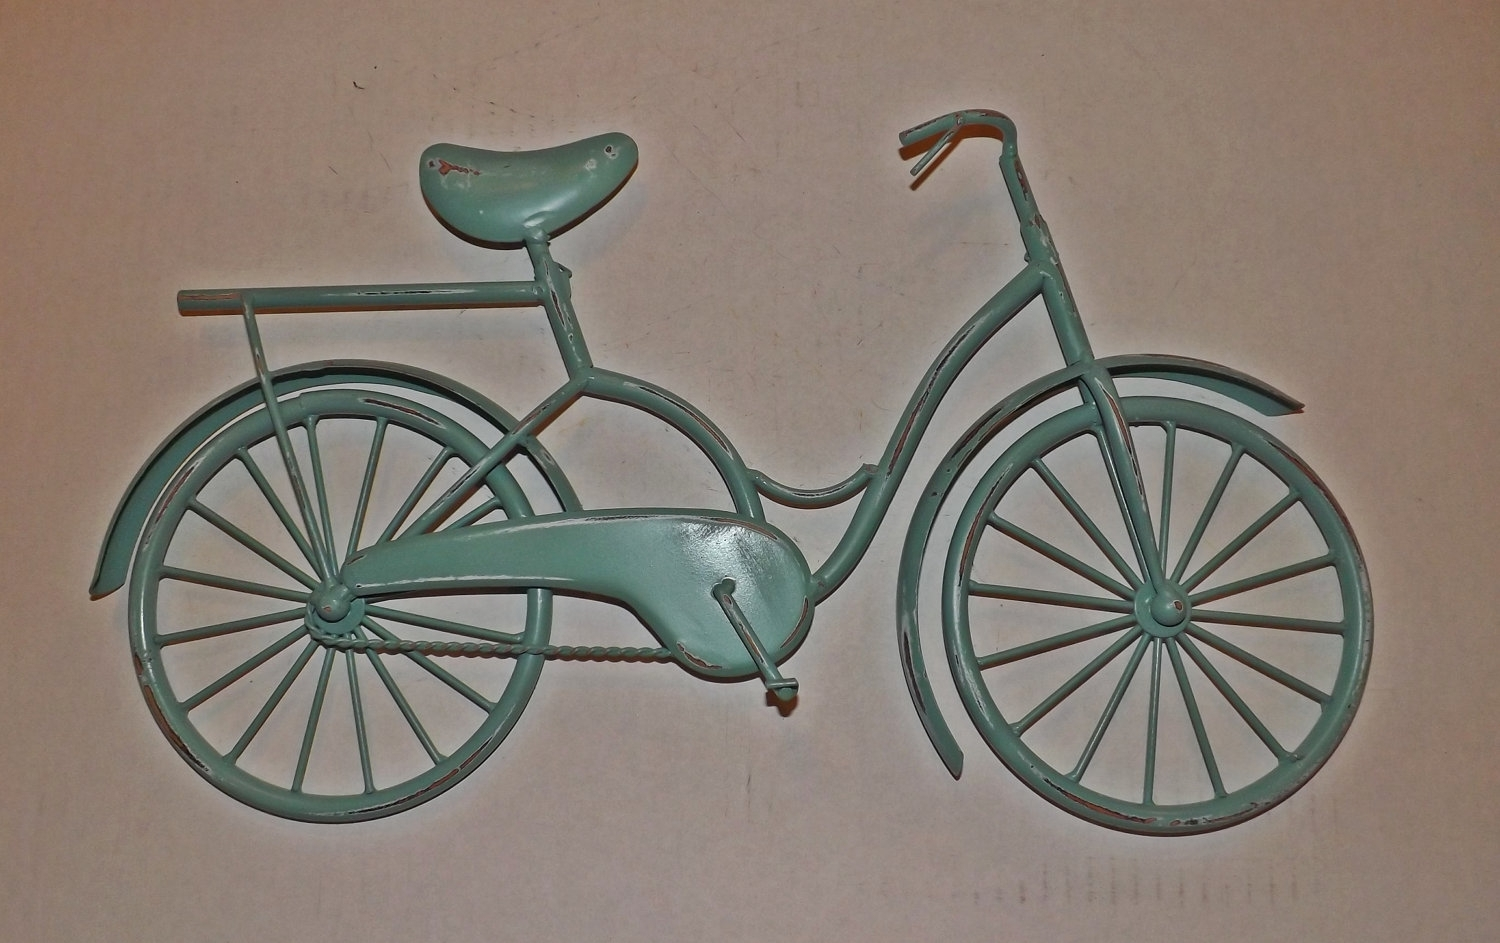 Wall Art Bicycle – Elitflat Throughout Most Up To Date Bicycle Wall Art (Gallery 17 of 20)